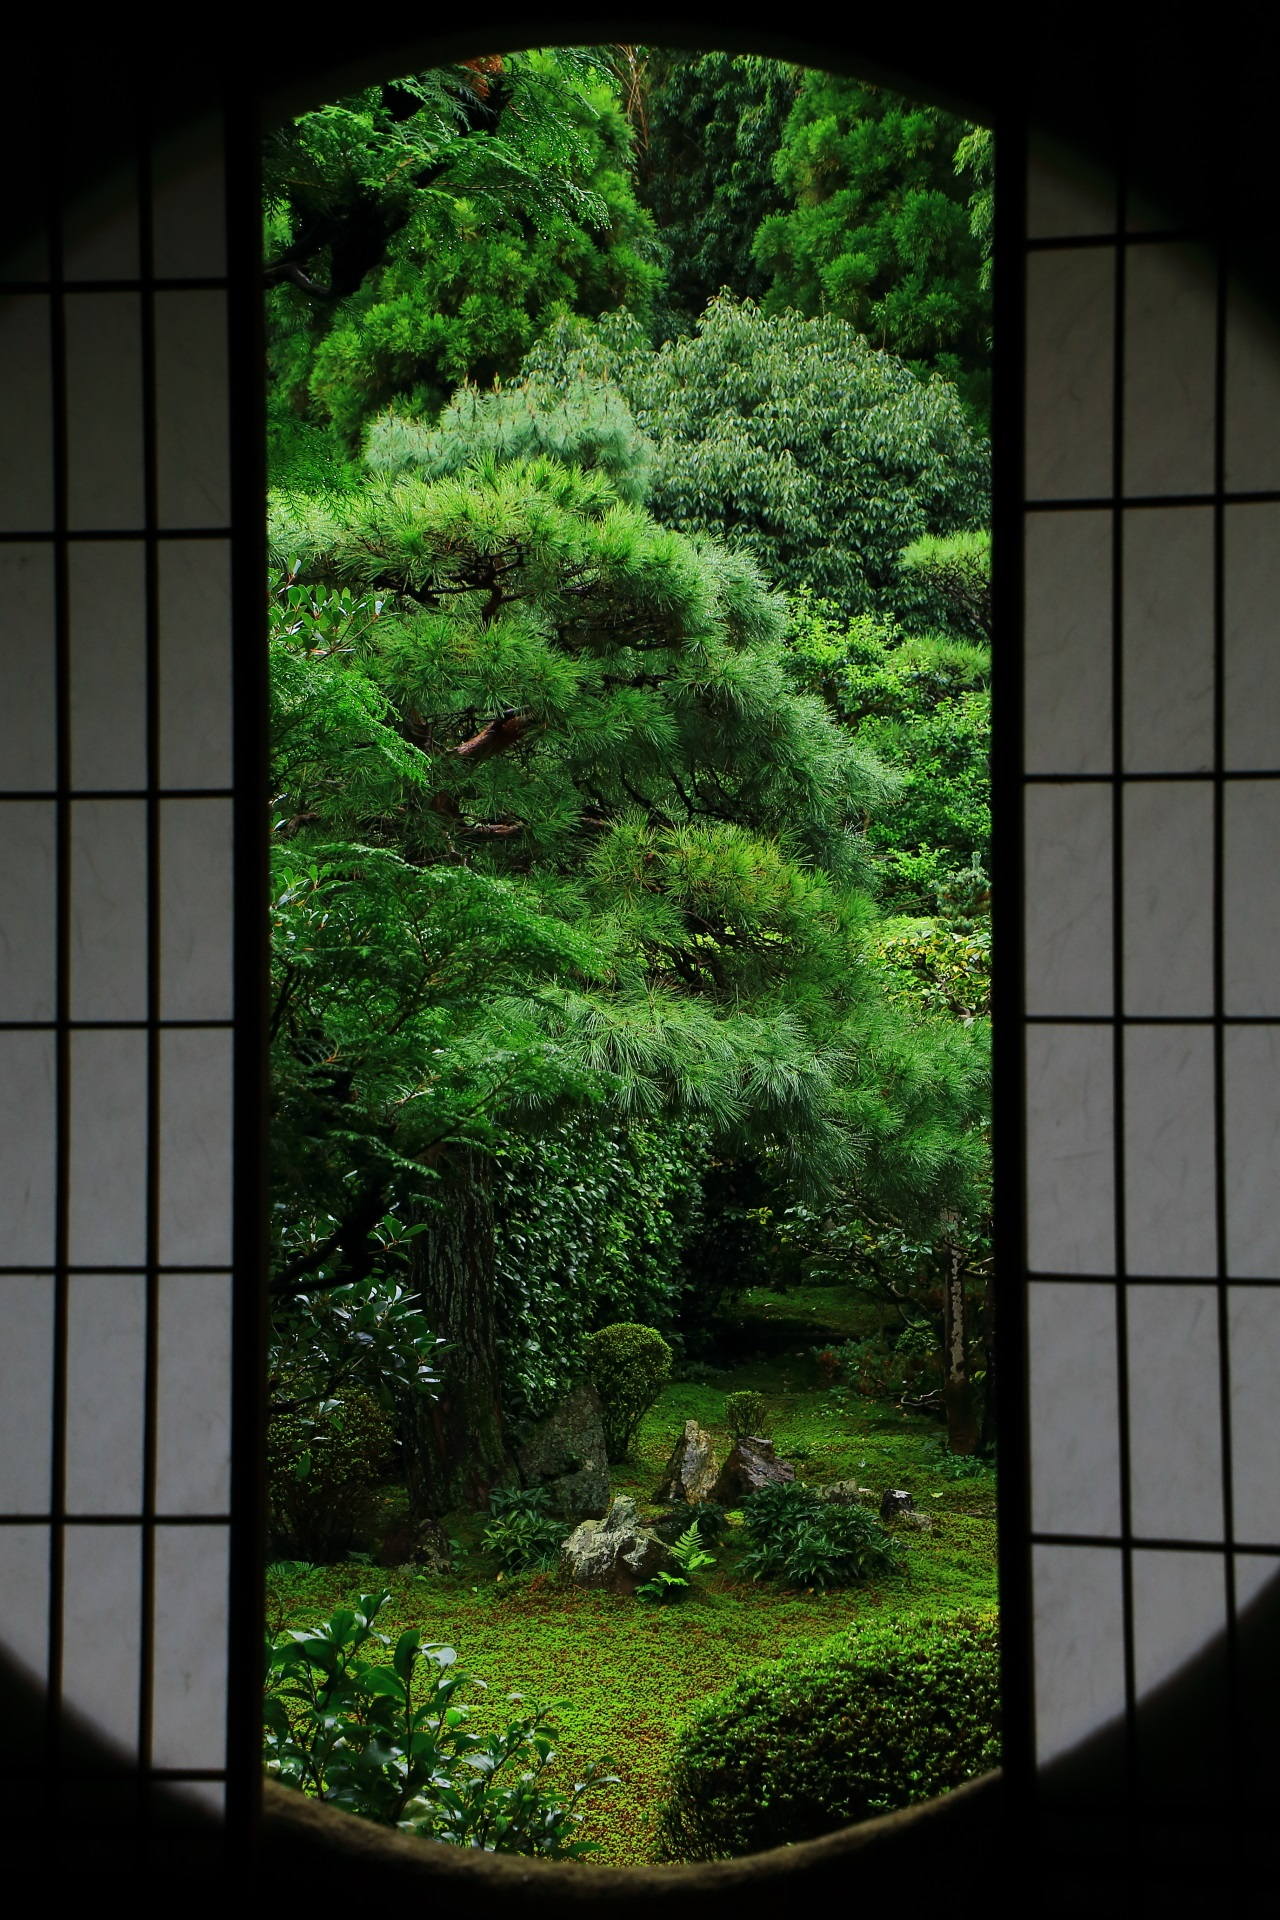 Round window and Garden of Funda-in Temple in Kyoto